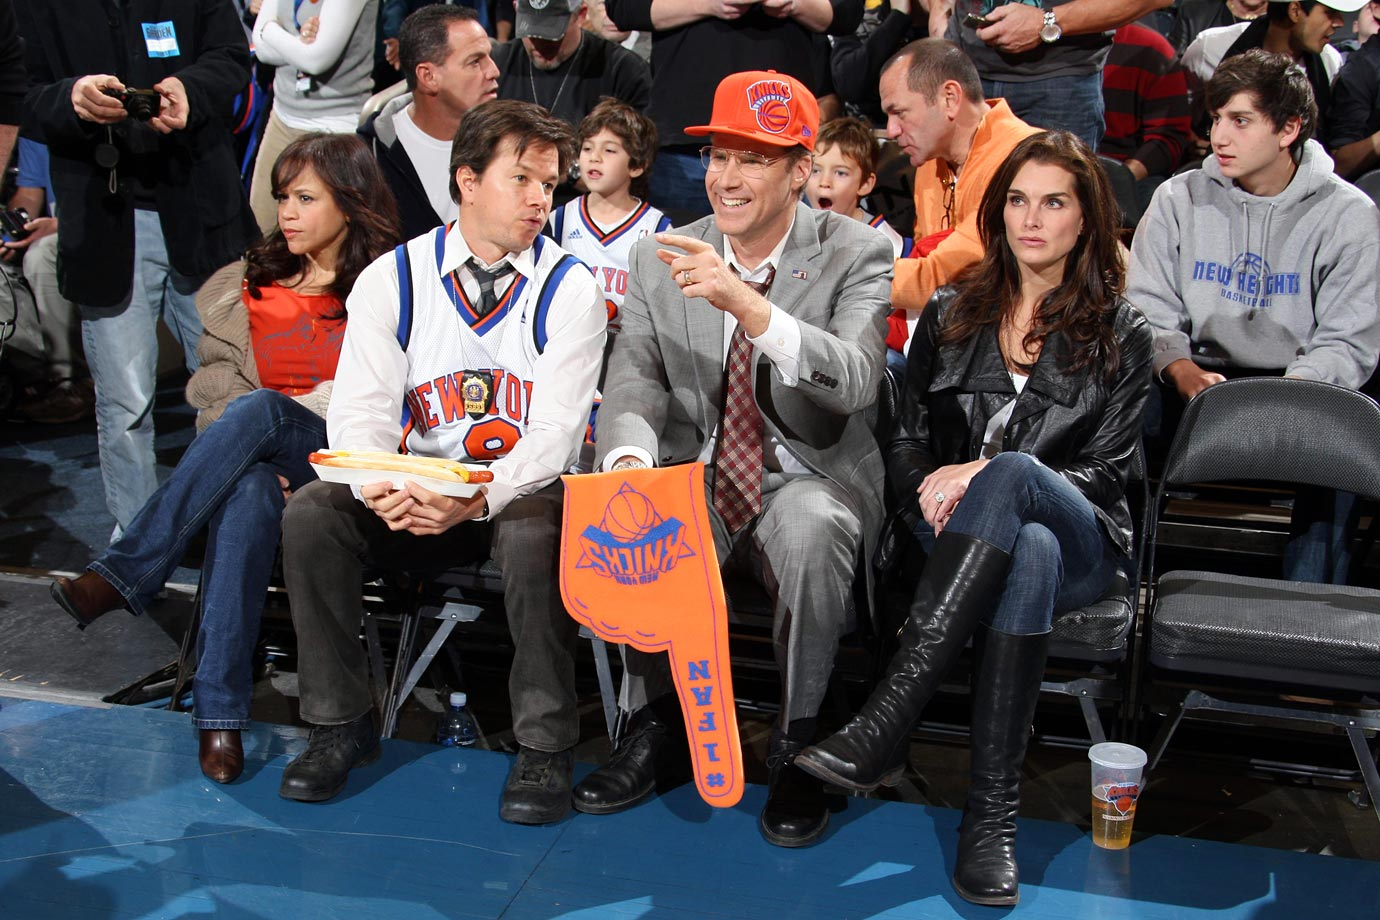 "Mark Wahlberg and Will Ferrell film a scene for their movie ""The Other Guys"" alongside Rosie Perez and Brooke Shields during the New York Knicks game against the Boston Celtics on Nov. 22, 2009 at Madison Square Garden in New York City."